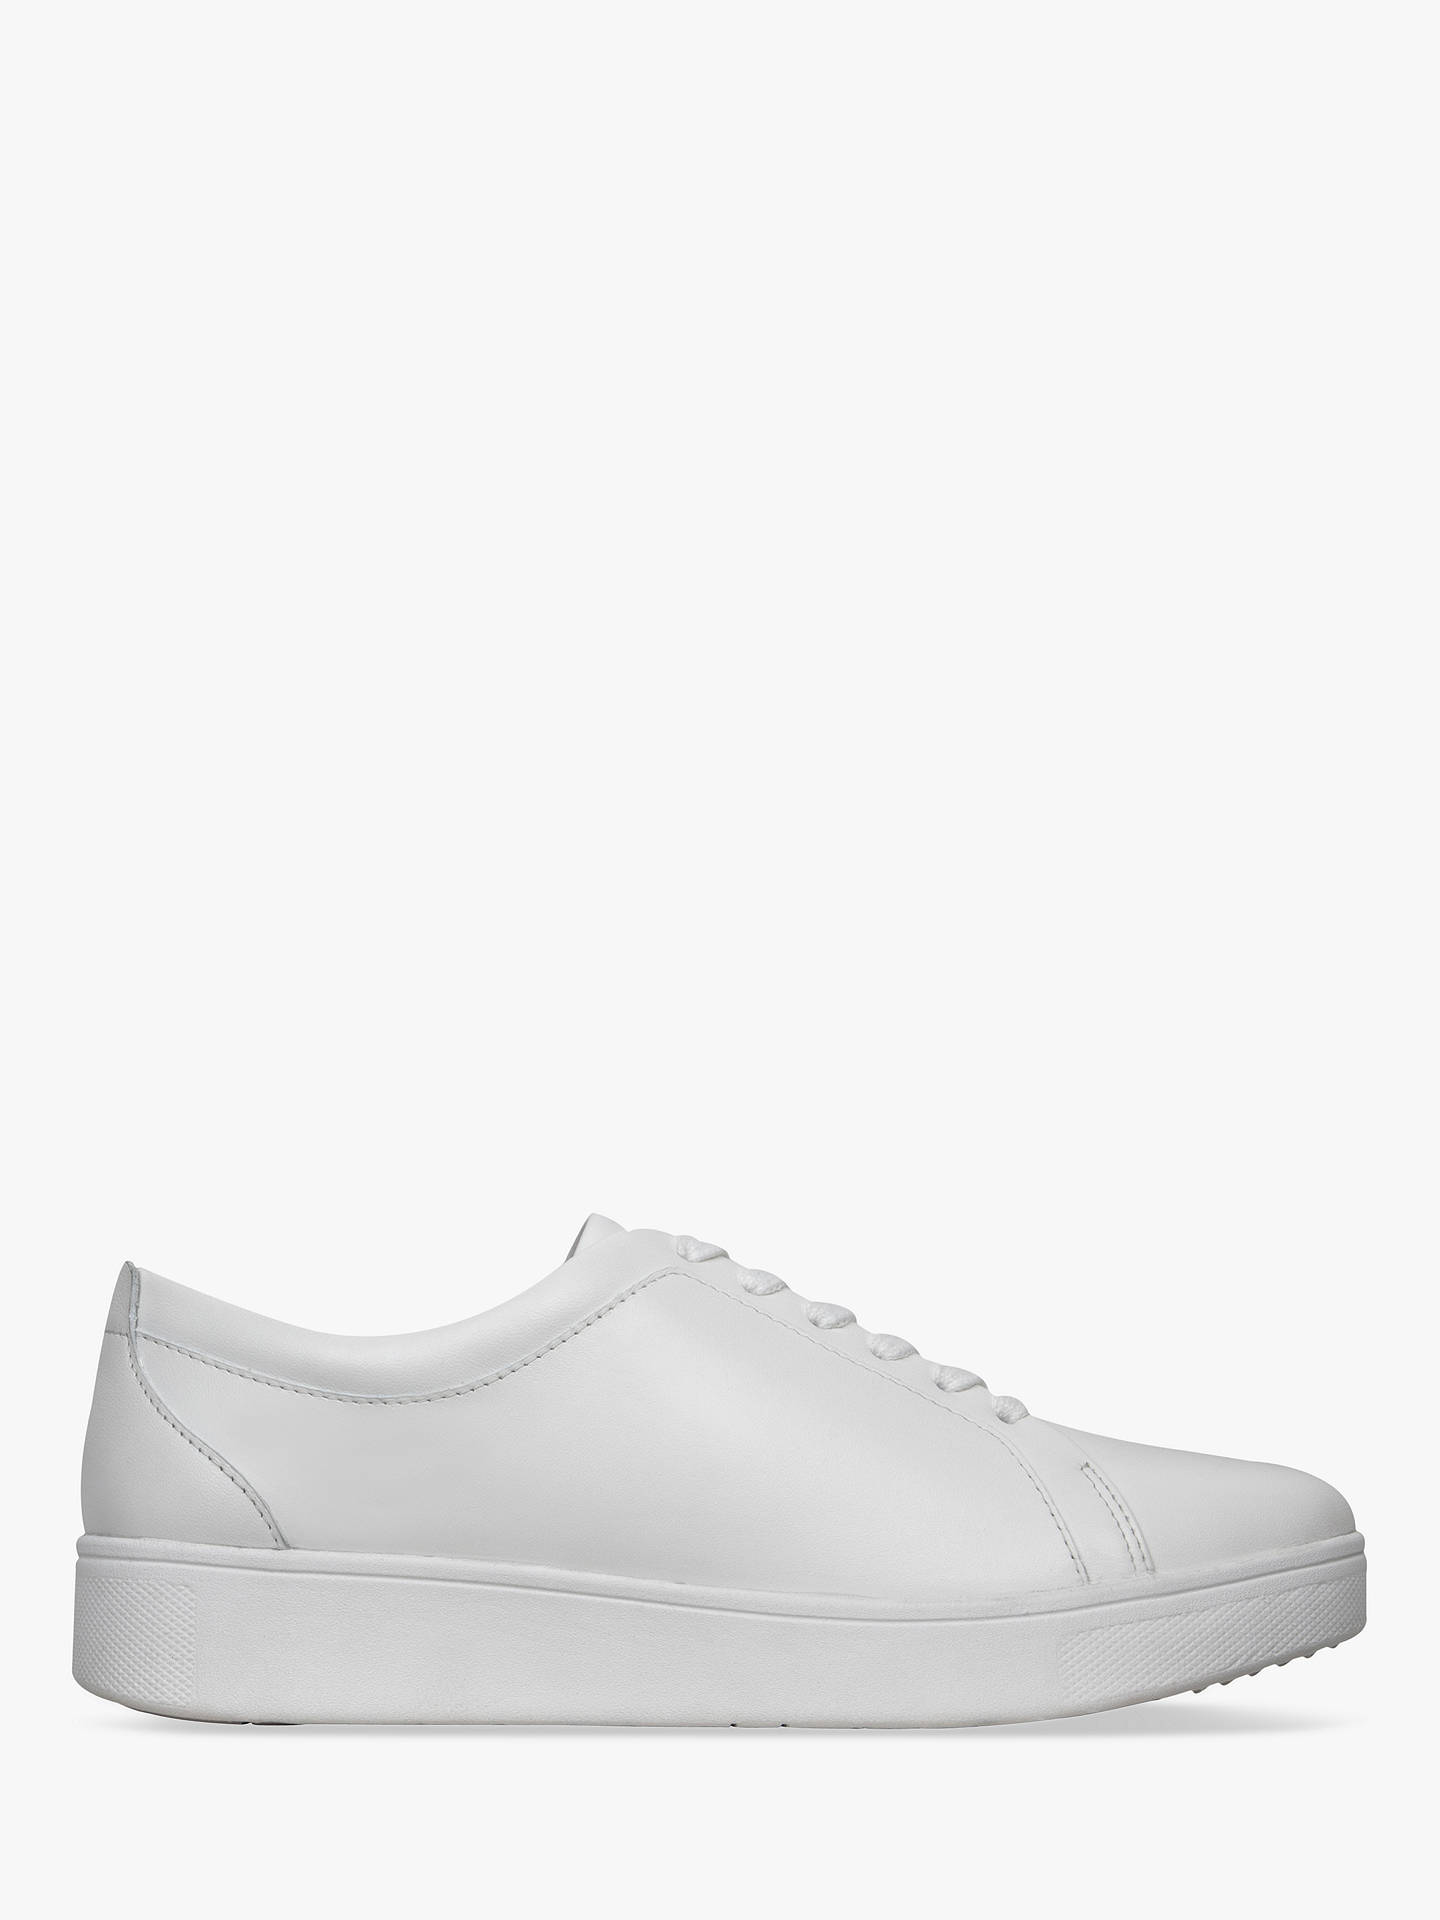 623b8739029c8 Buy FitFlop Rally Lace Up Trainers, White Leather, 3 Online at  johnlewis.com ...